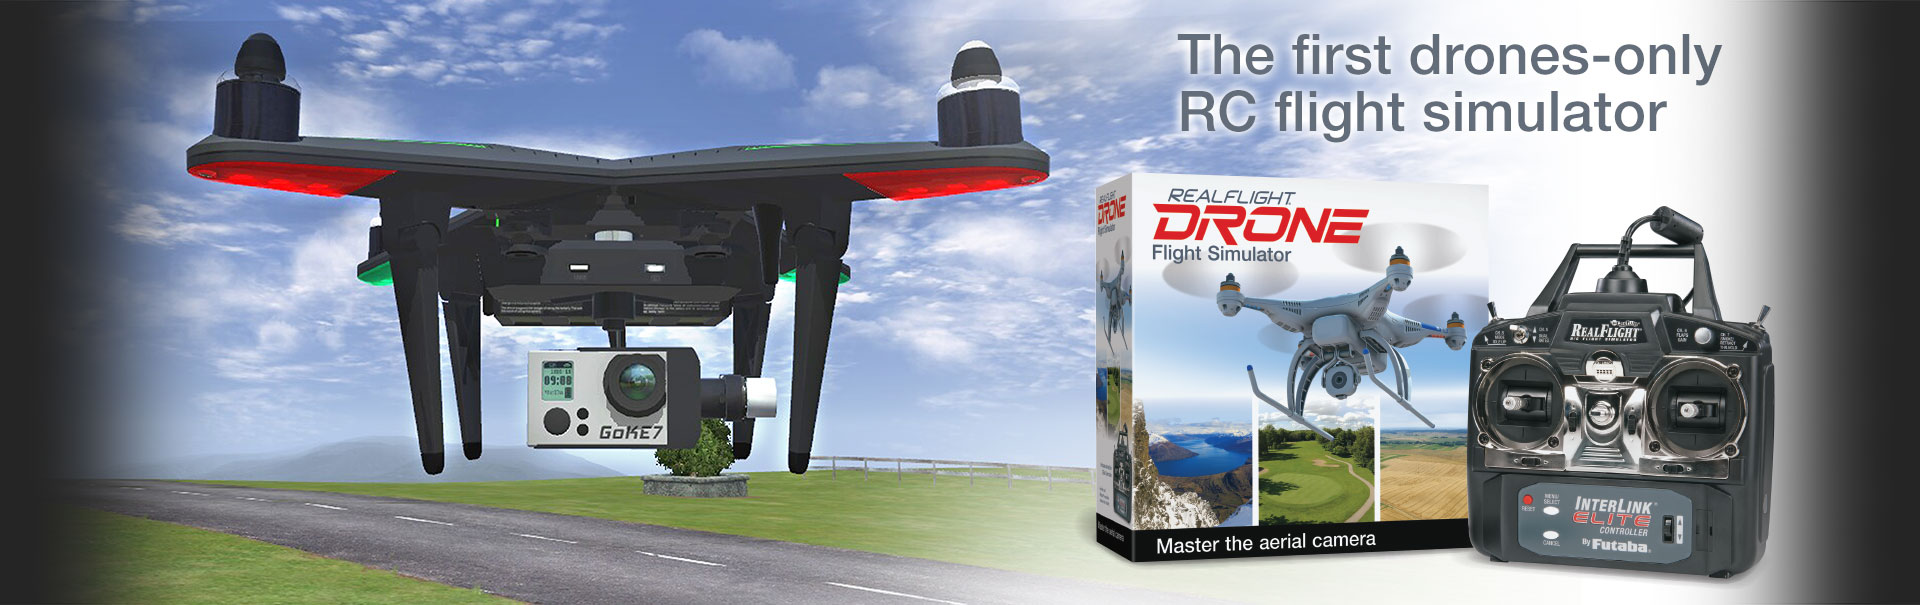 RealFlight Drone: The first drones-only RC flight simulator.